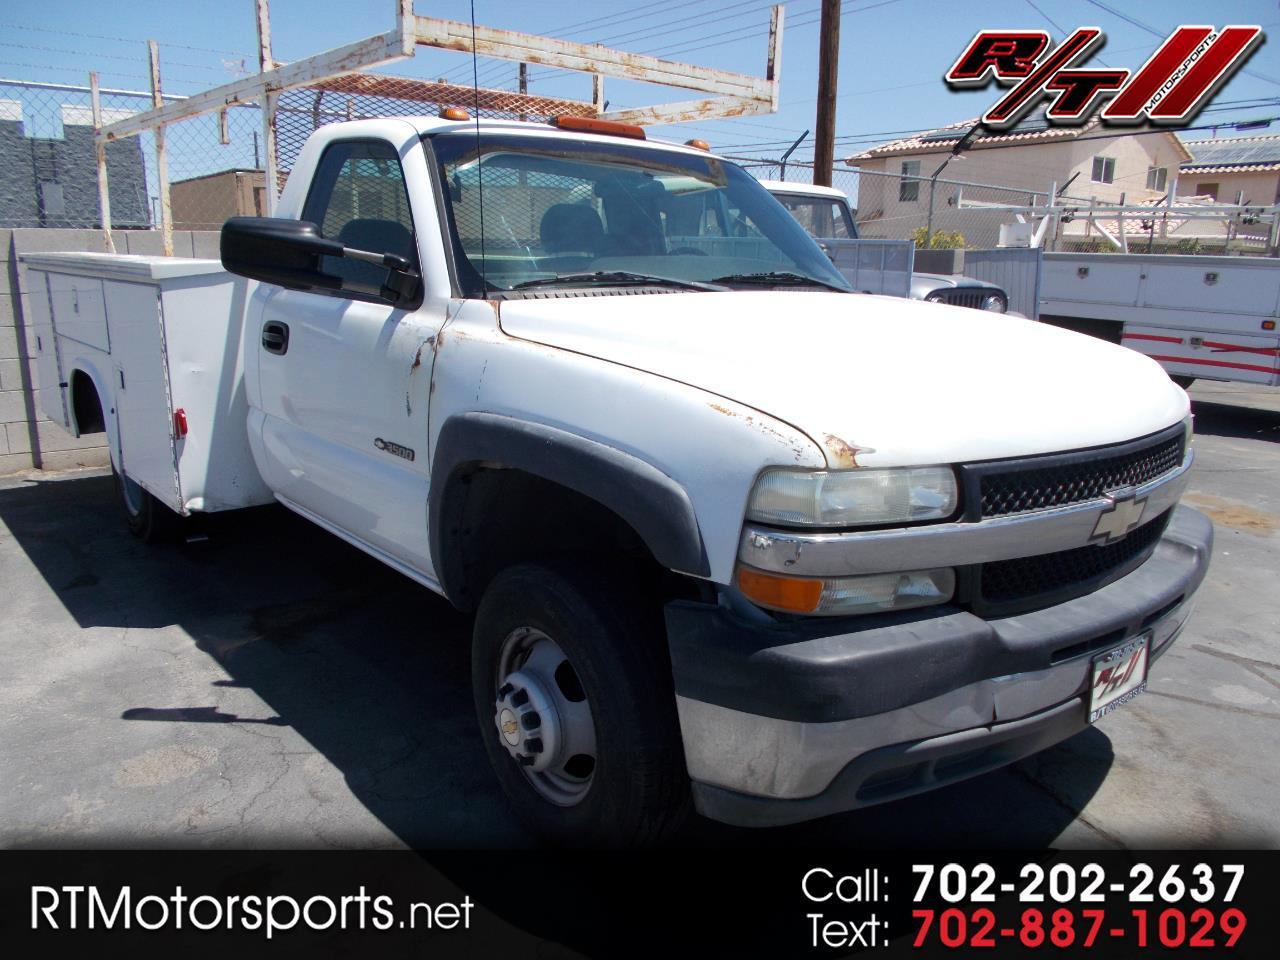 Chevrolet Silverado 3500 Regular Cab 2WD 2002